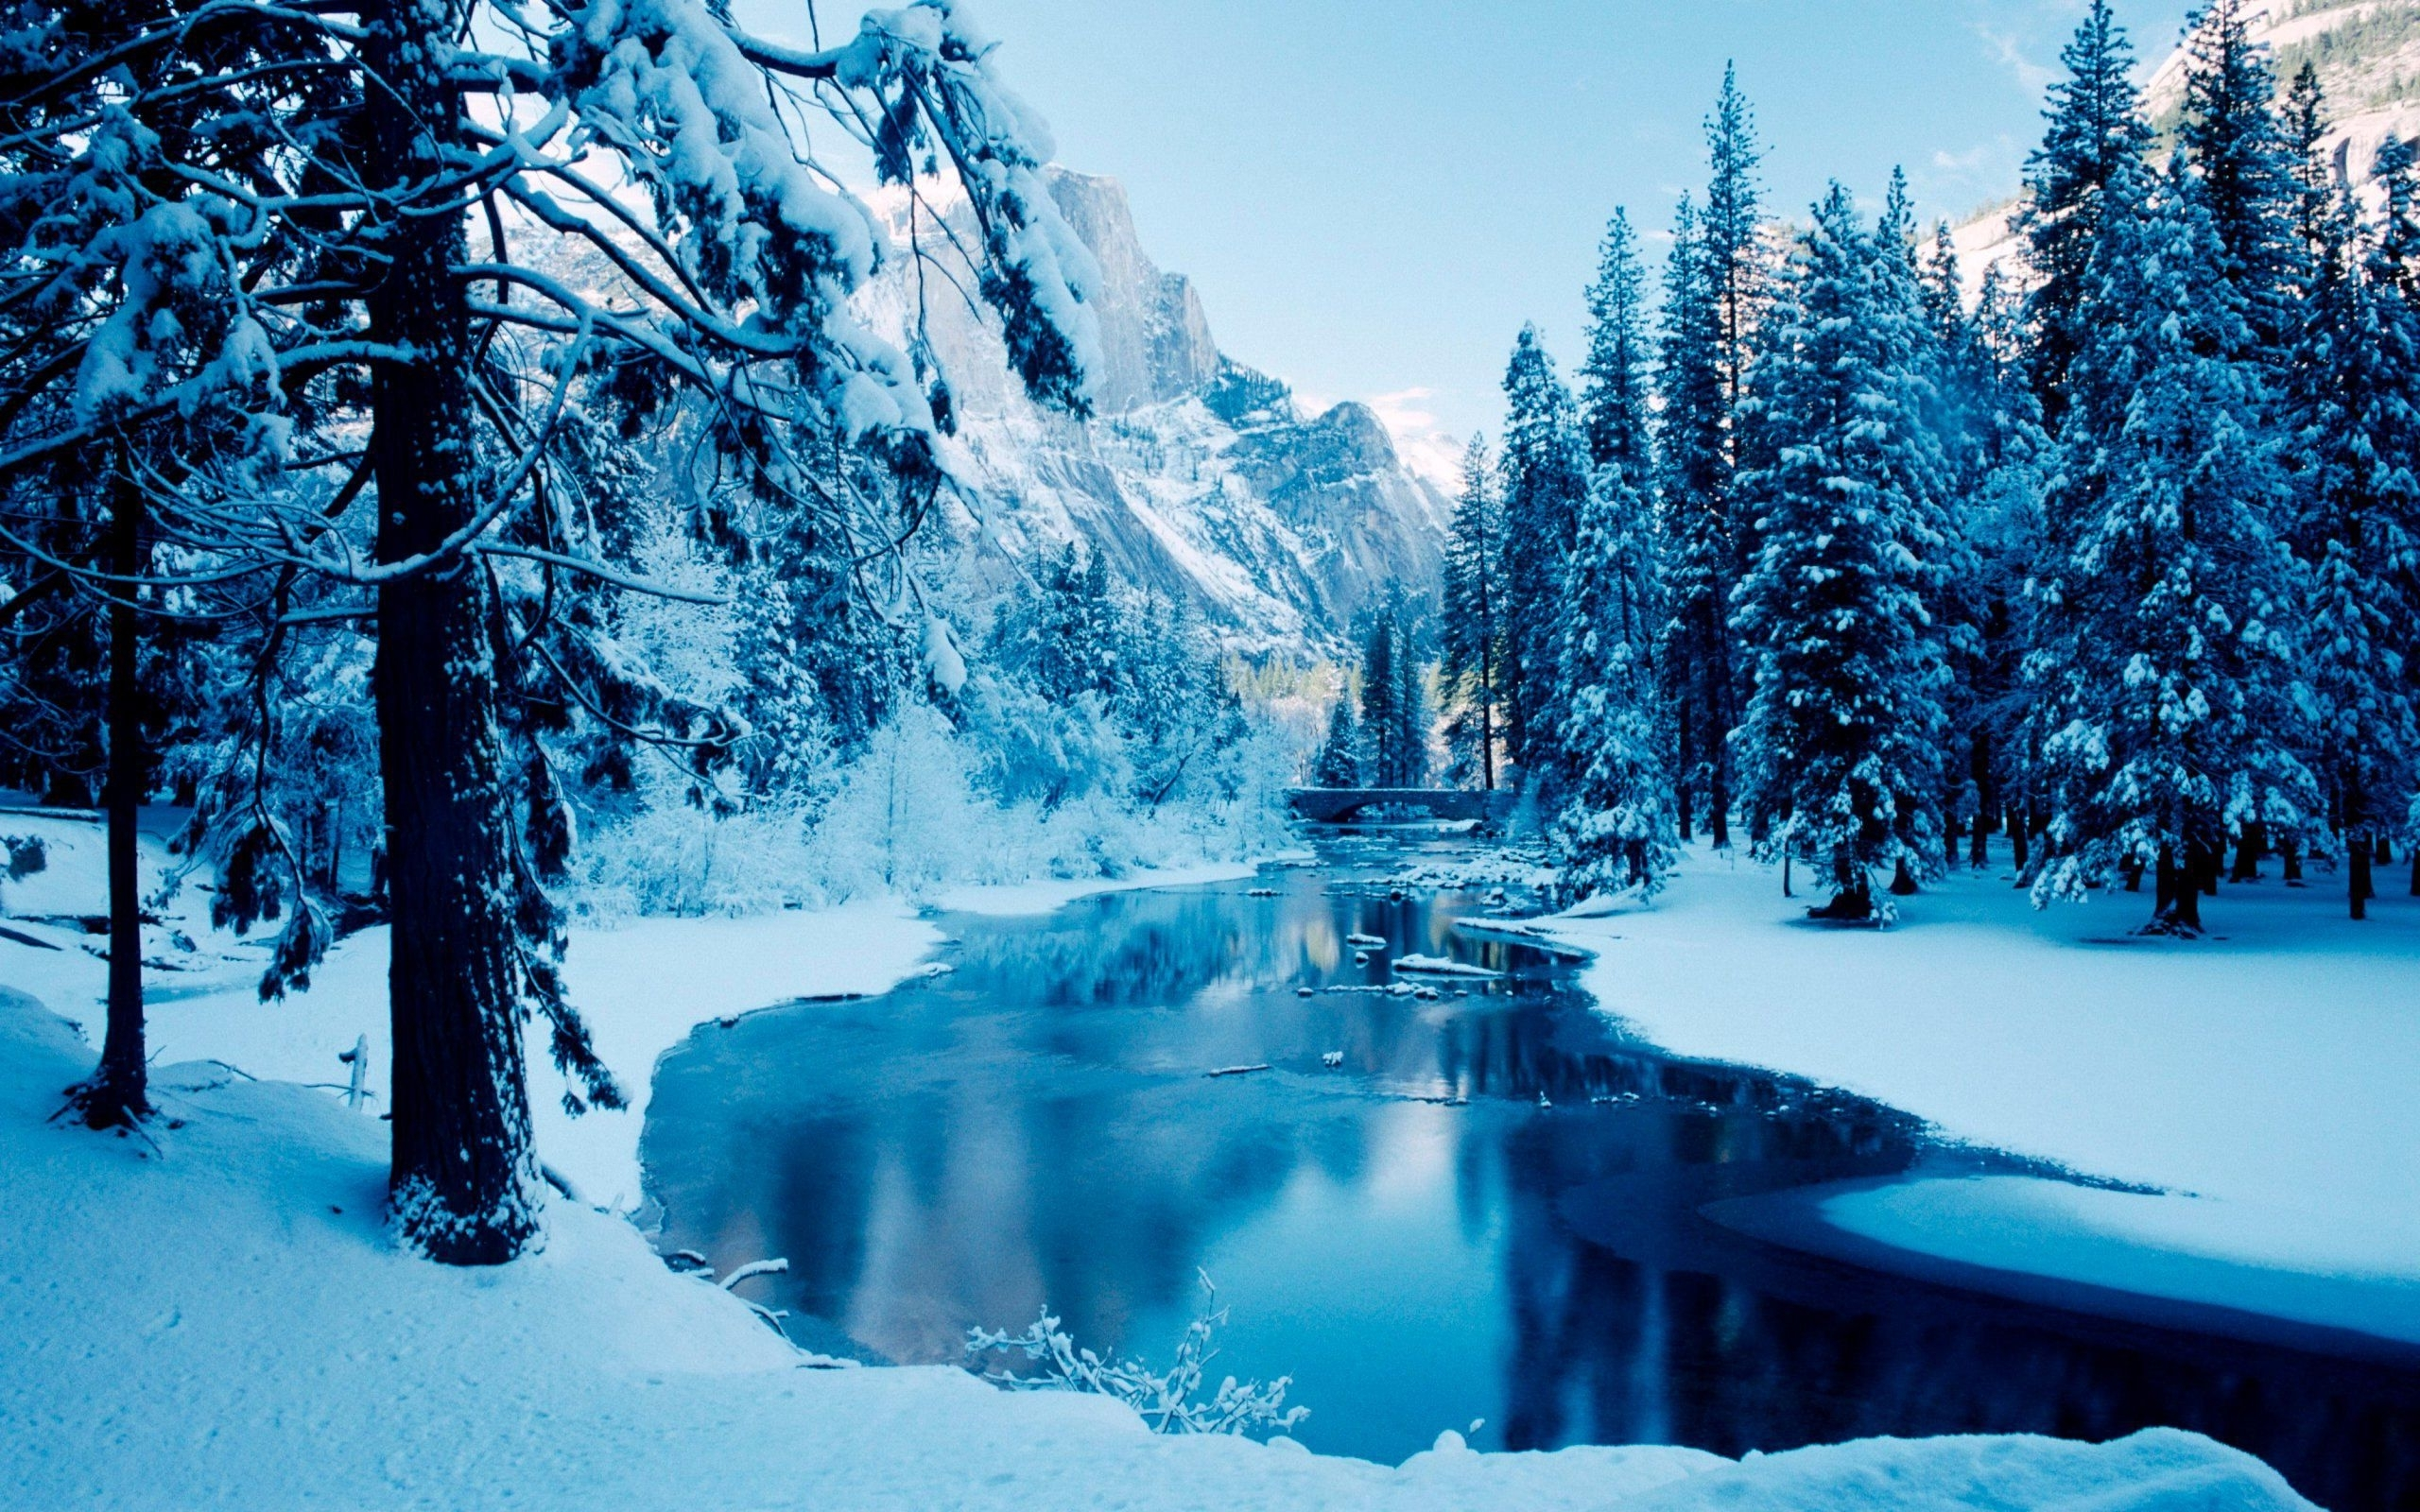 10 Latest Winter Scene Desktop Wallpaper FULL HD 1920×1080 For PC Background